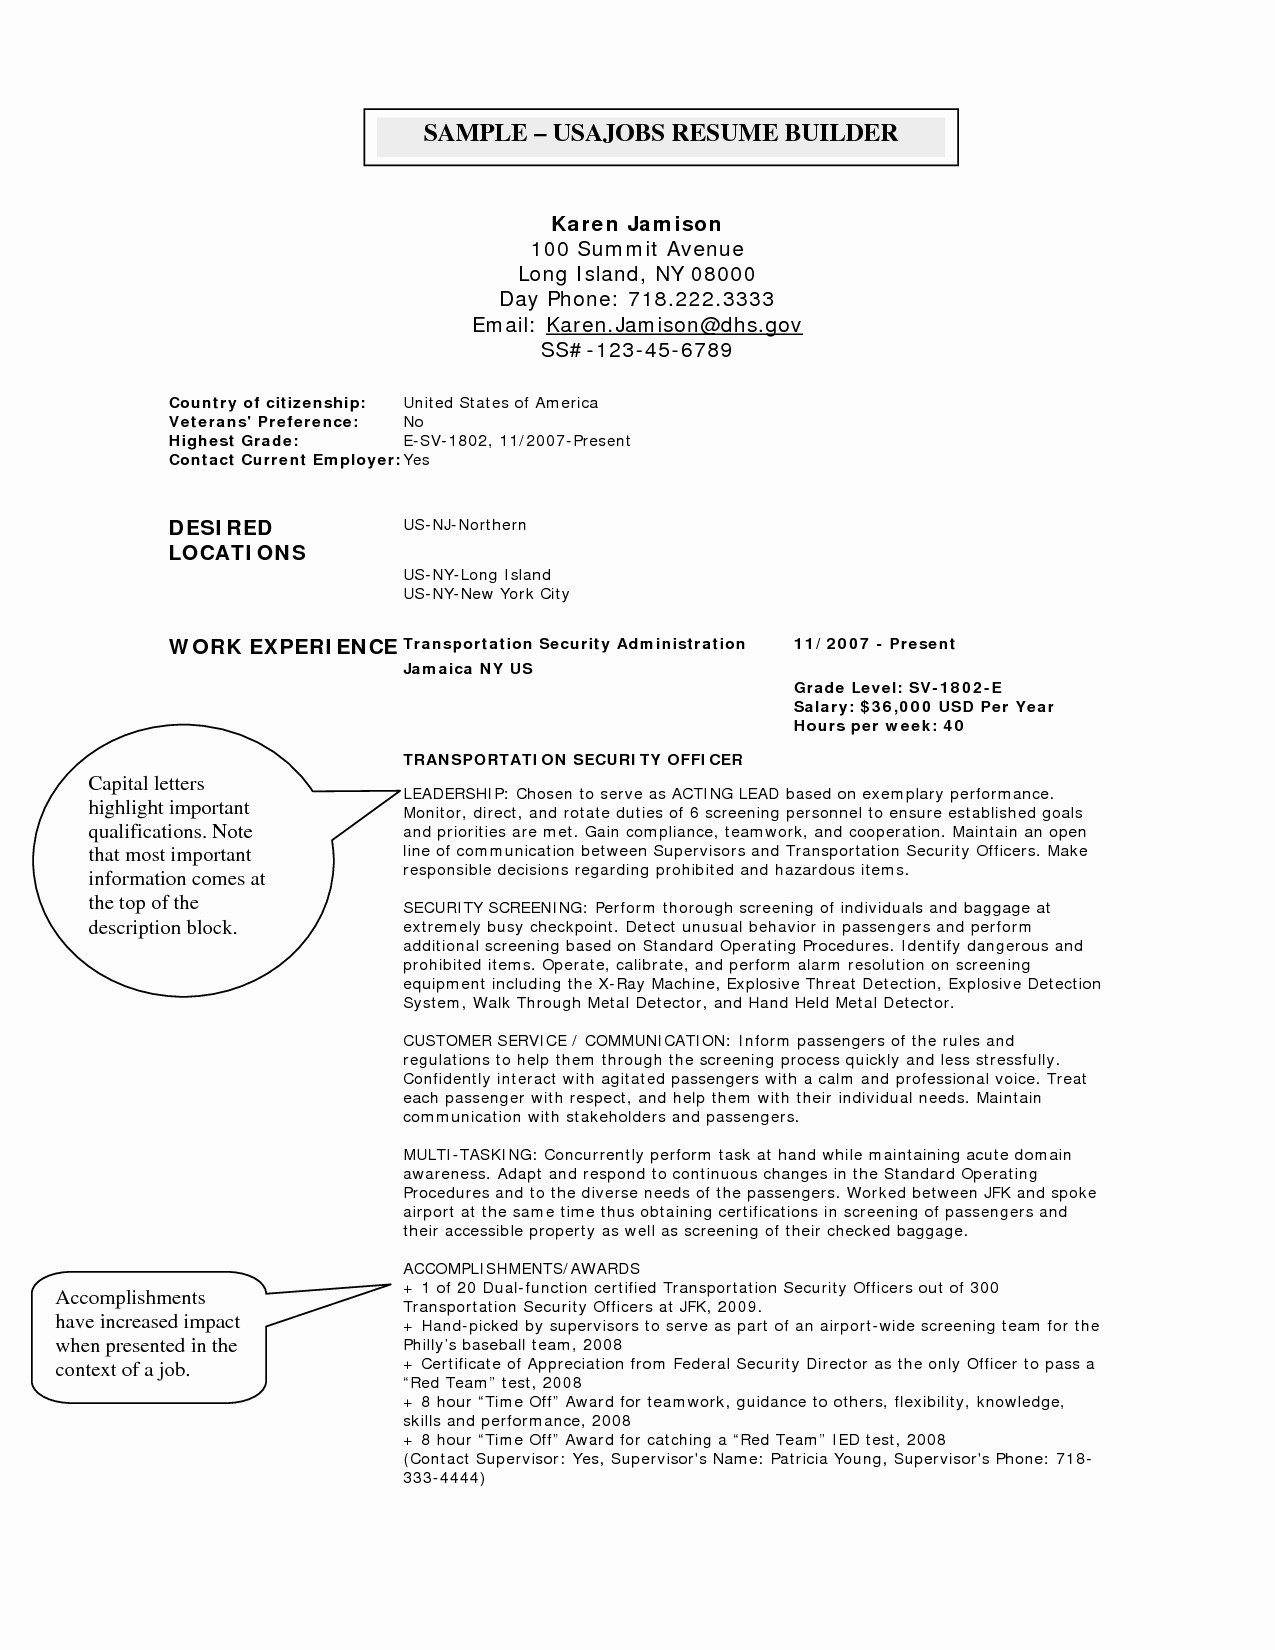 Usajobs Resume Template - Federal Job Resume Samples New Usajobs Resume Sample New Federal